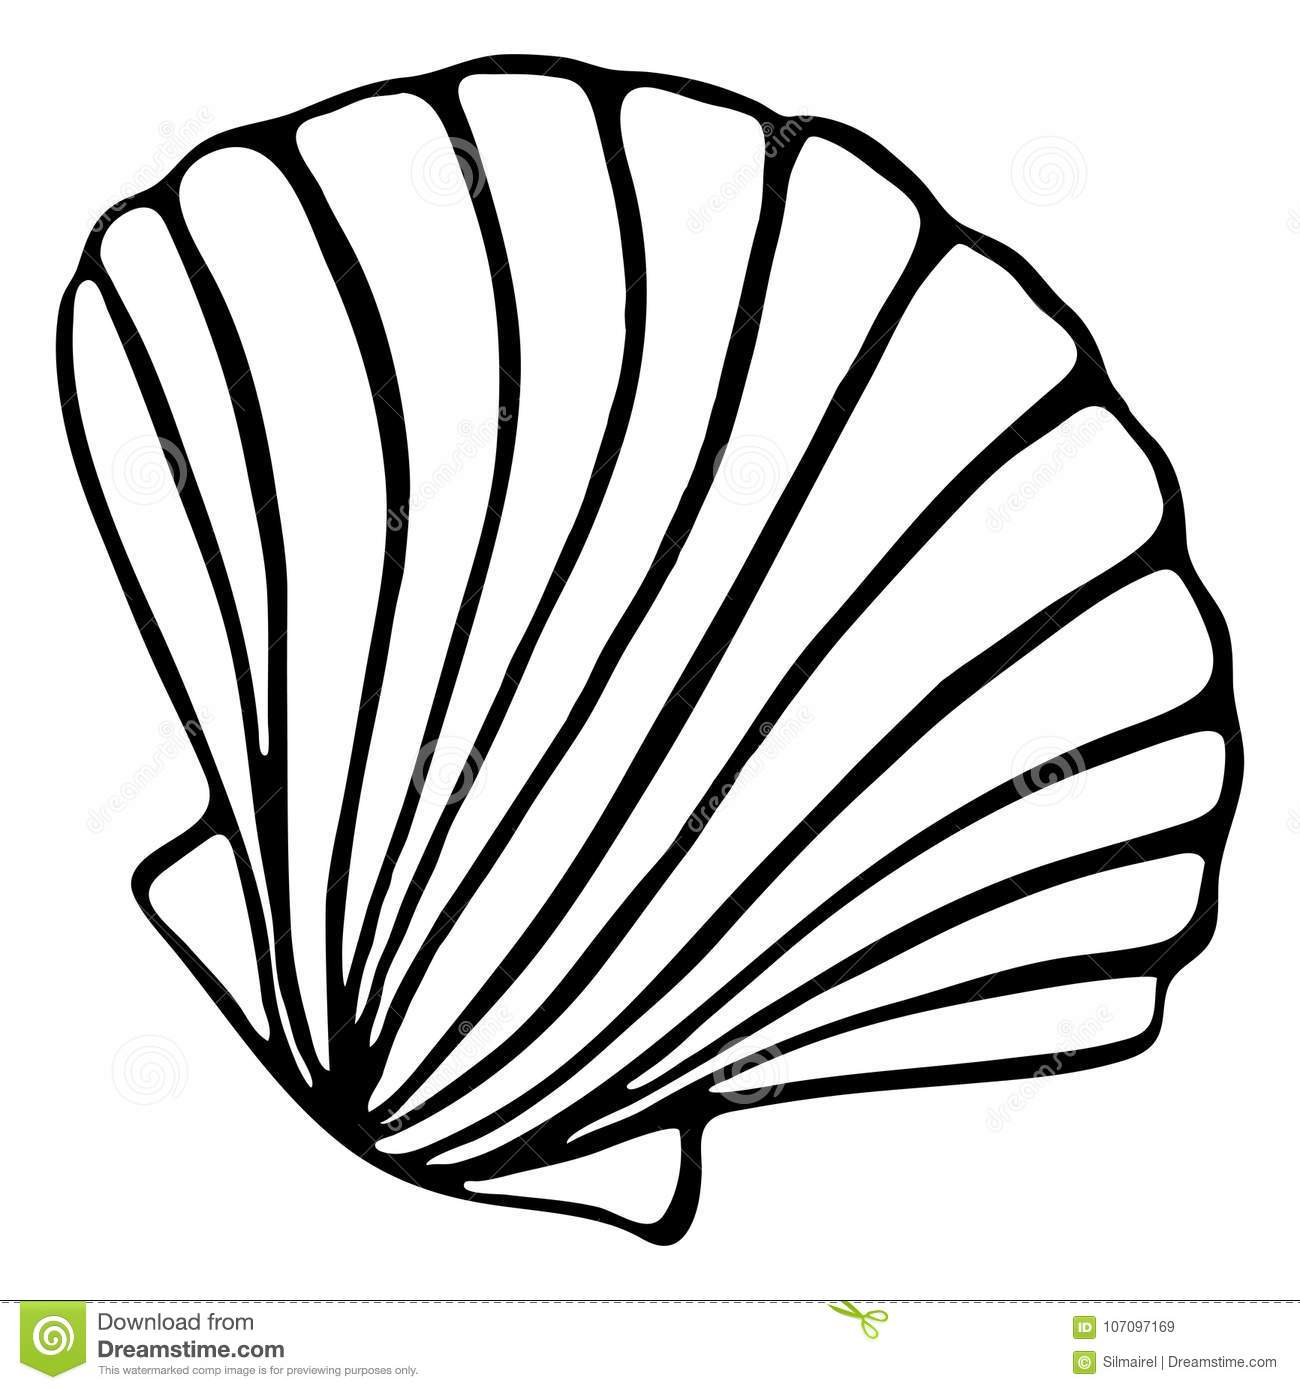 Monochrome Black And White Sea Shell Seashell Silhouette